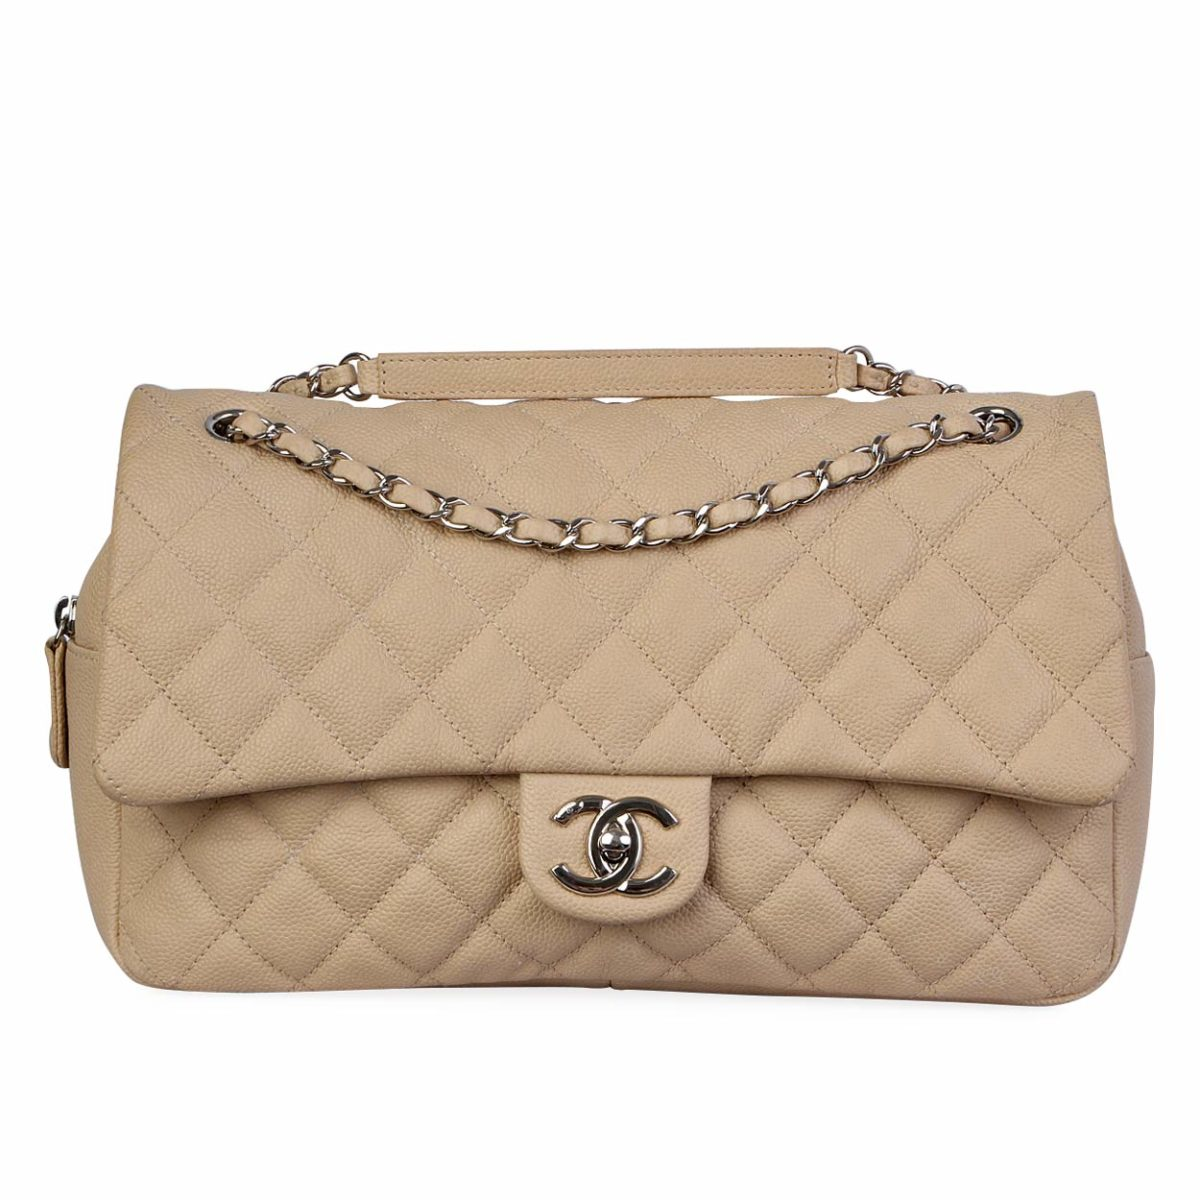 4eef181422f7 CHANEL Quilted Caviar Jumbo Easy Flap Bag Beige